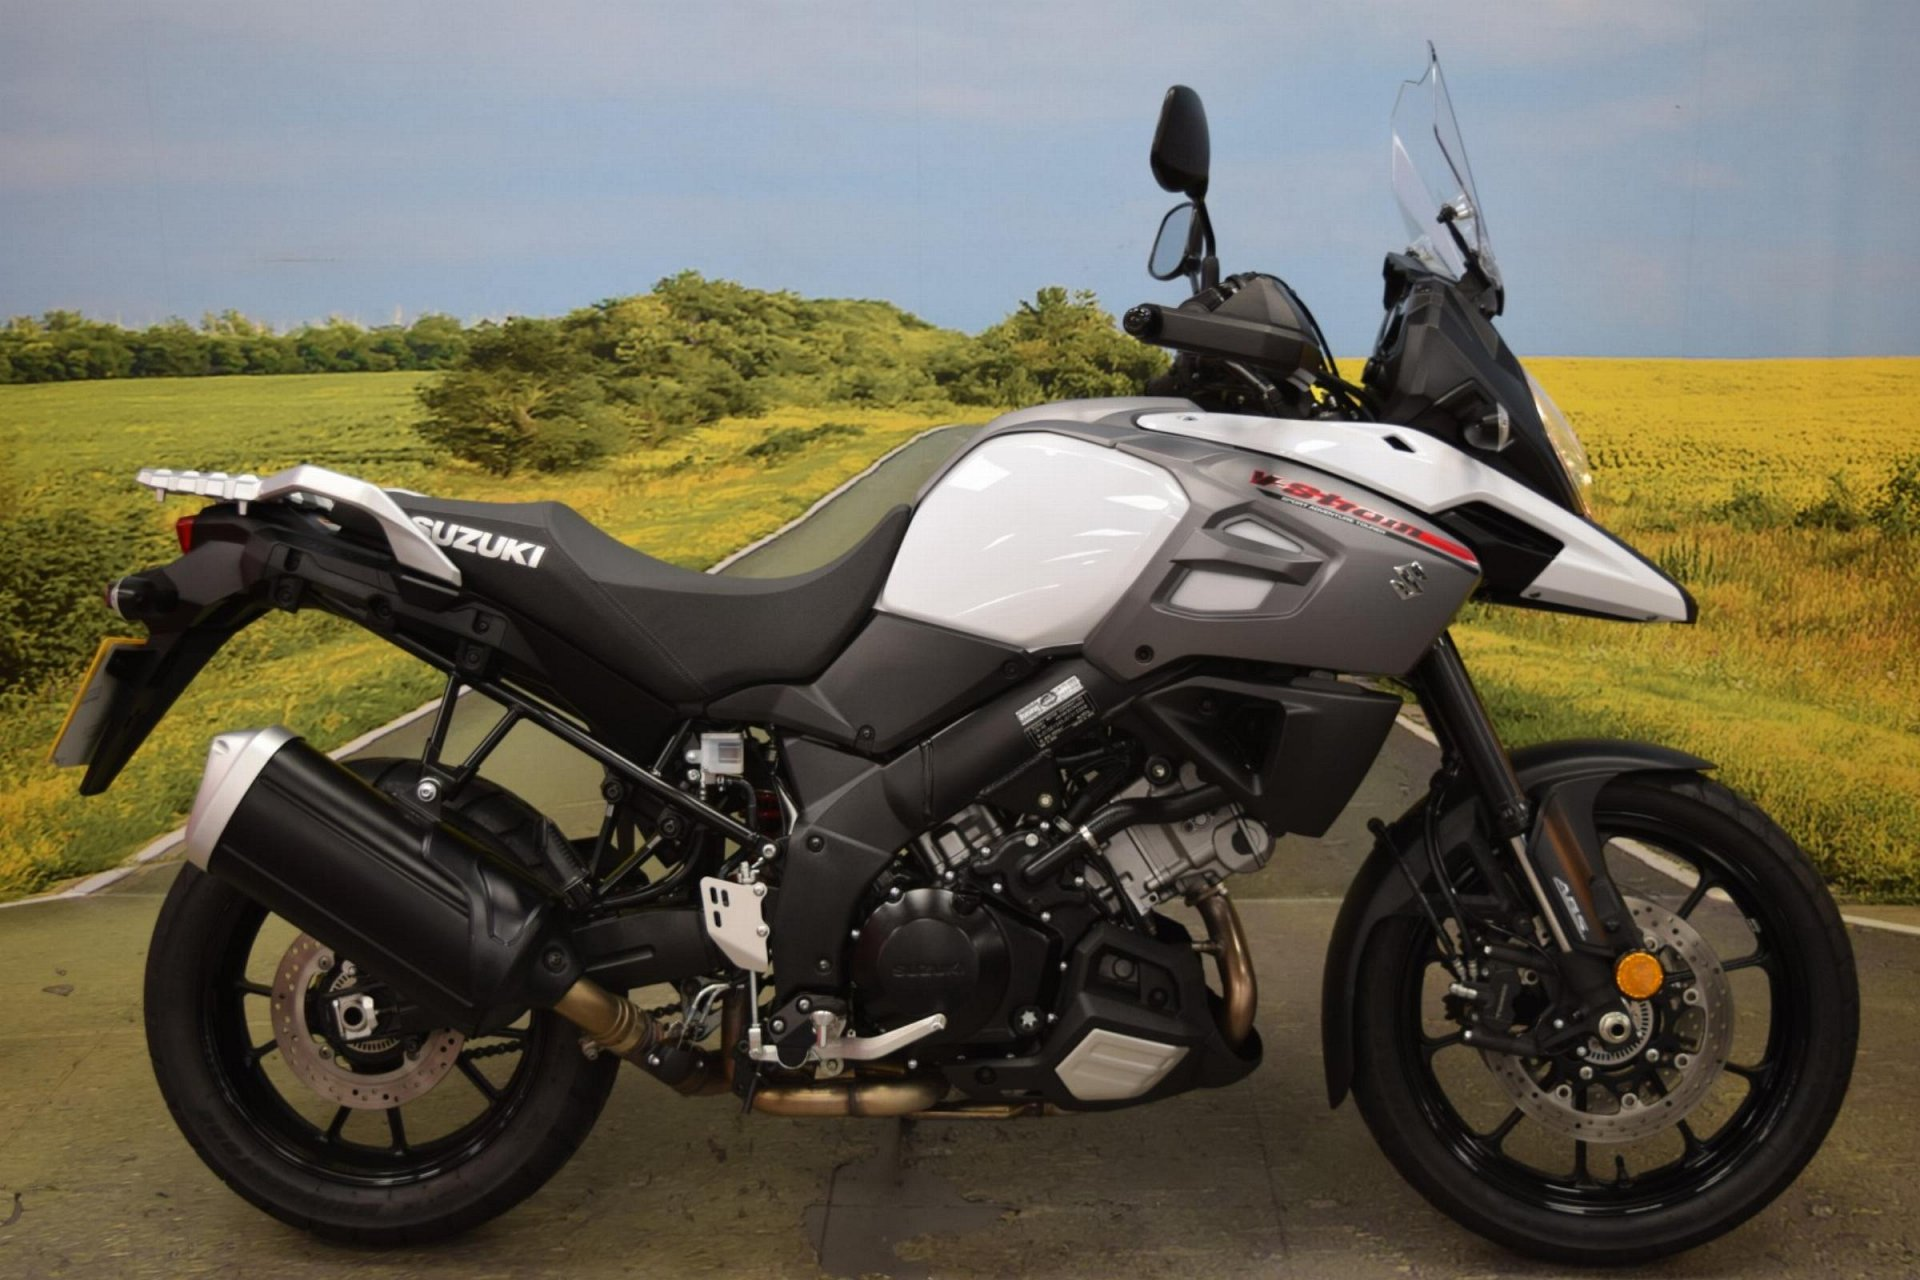 2017 Suzuki V Strom 1000 for sale in Staffordshire